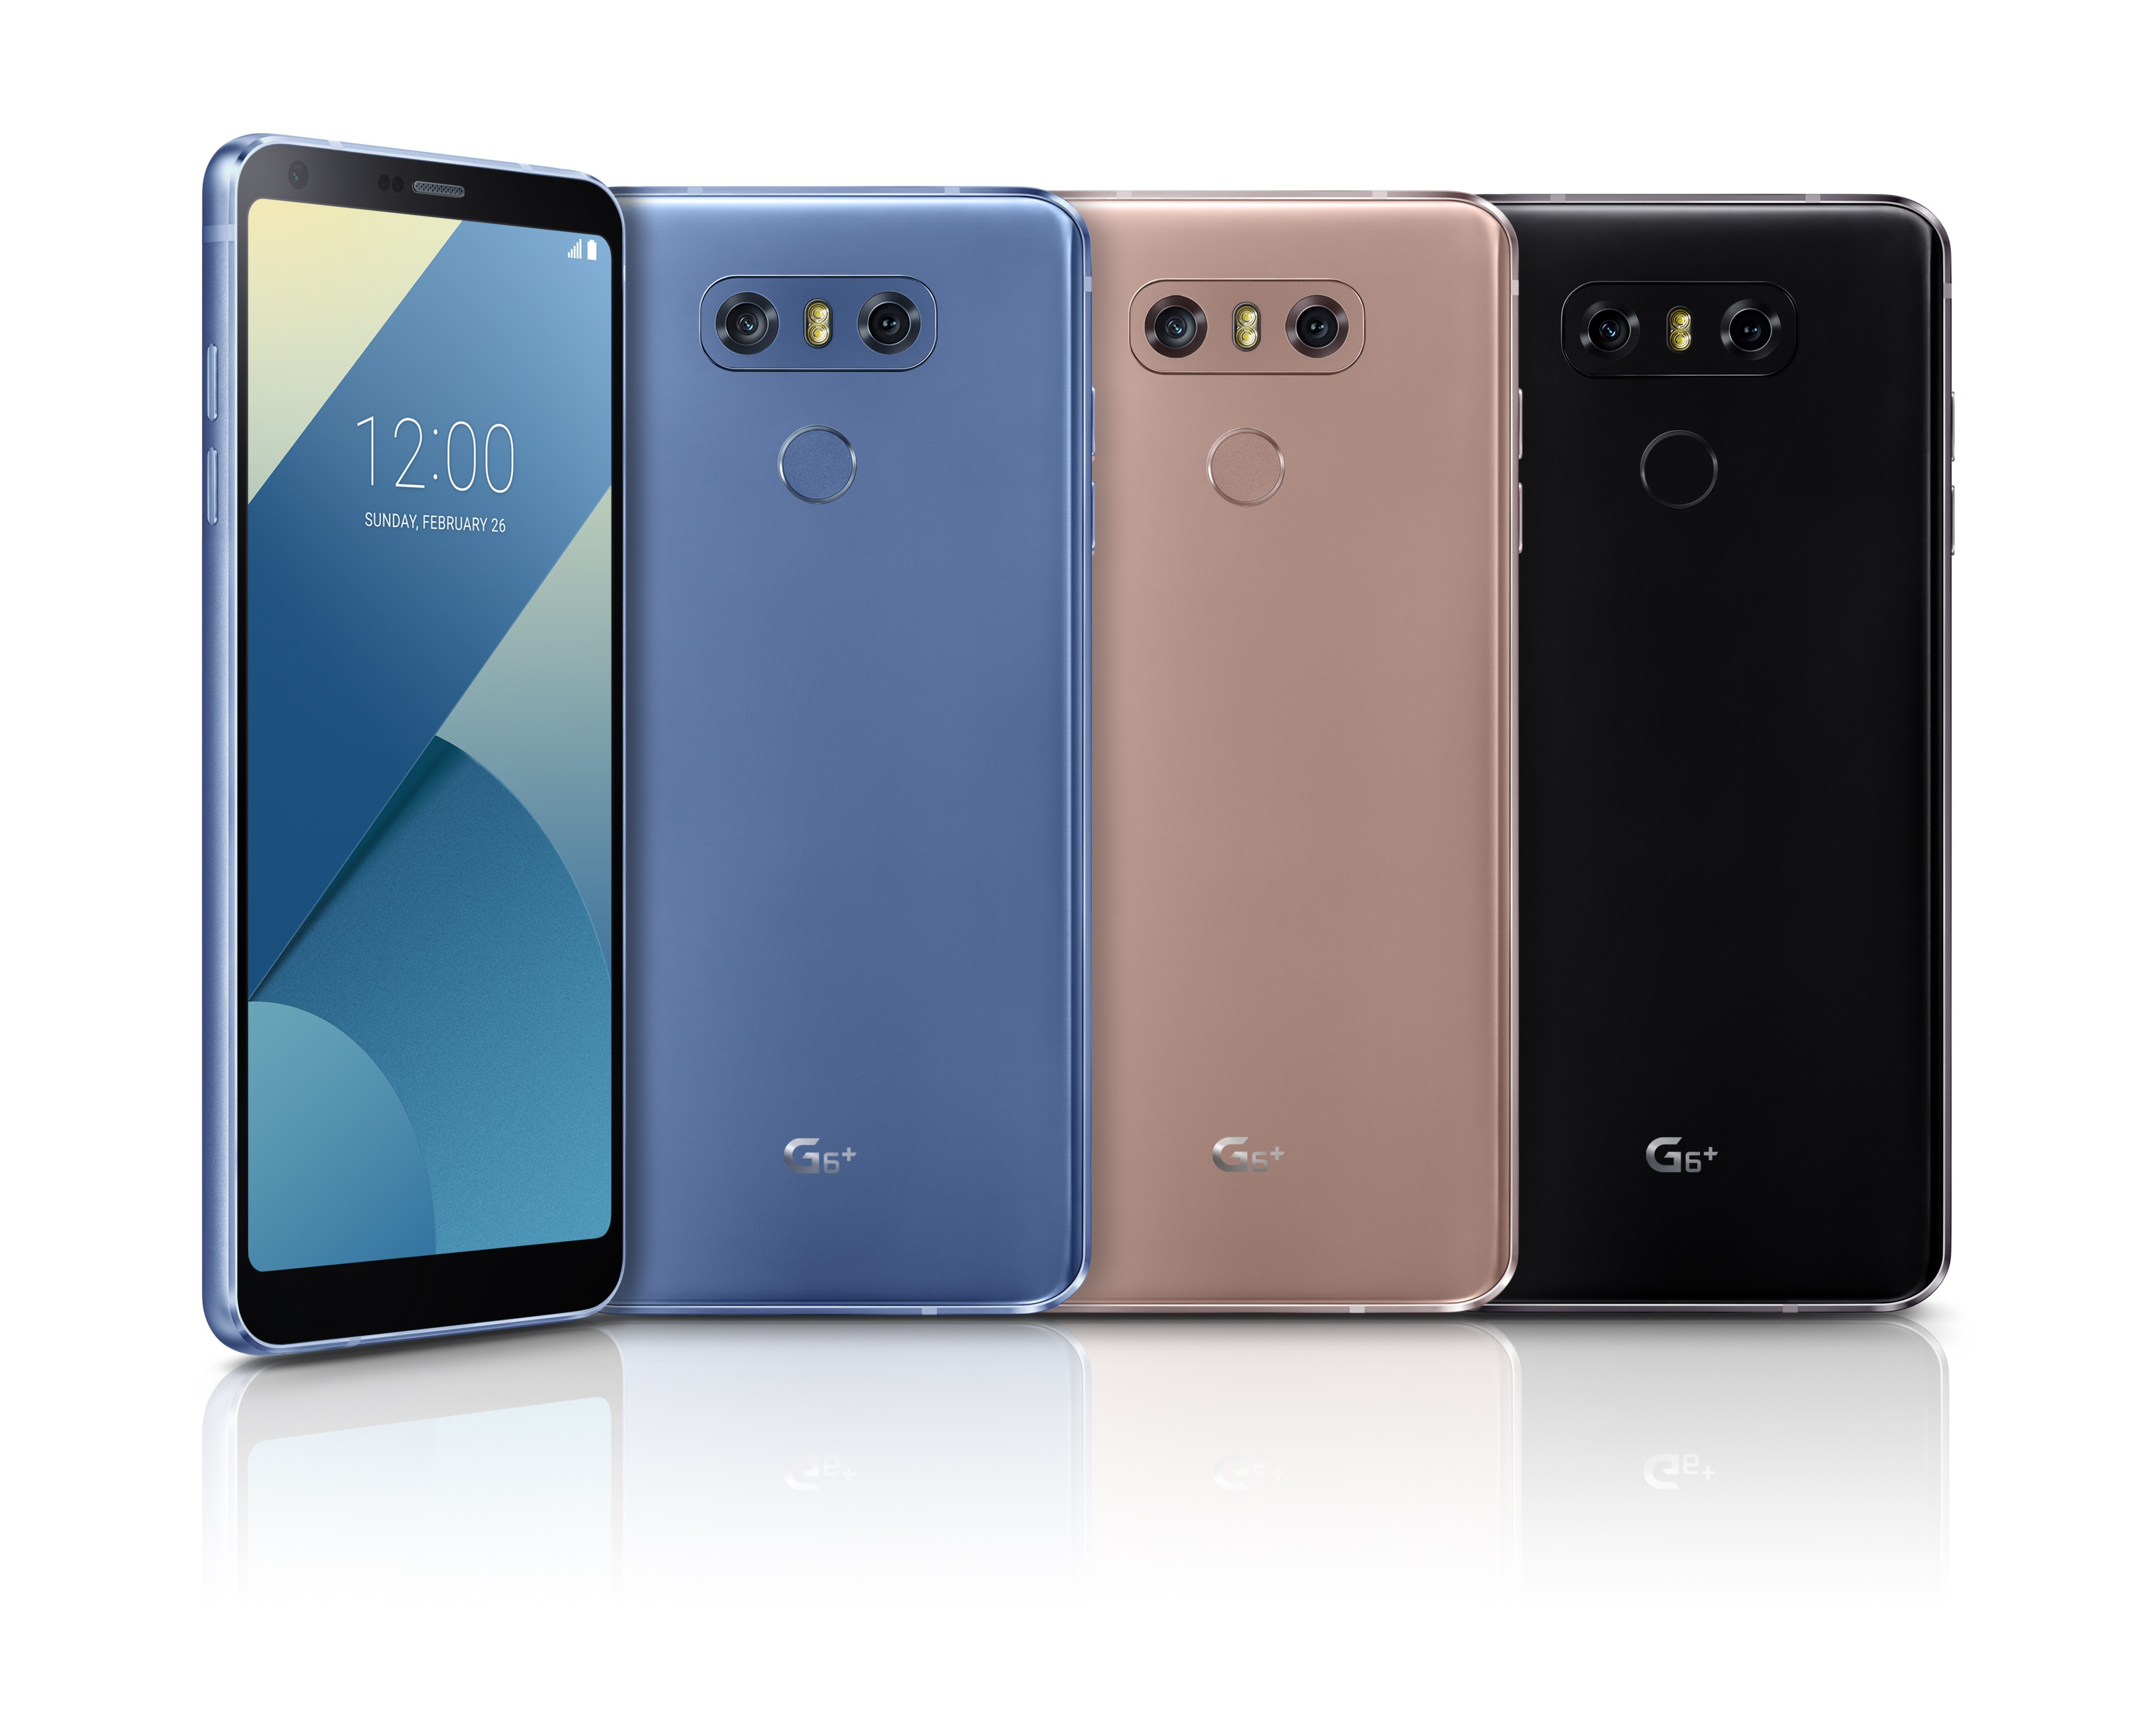 LG G6+ in blue, gold and black